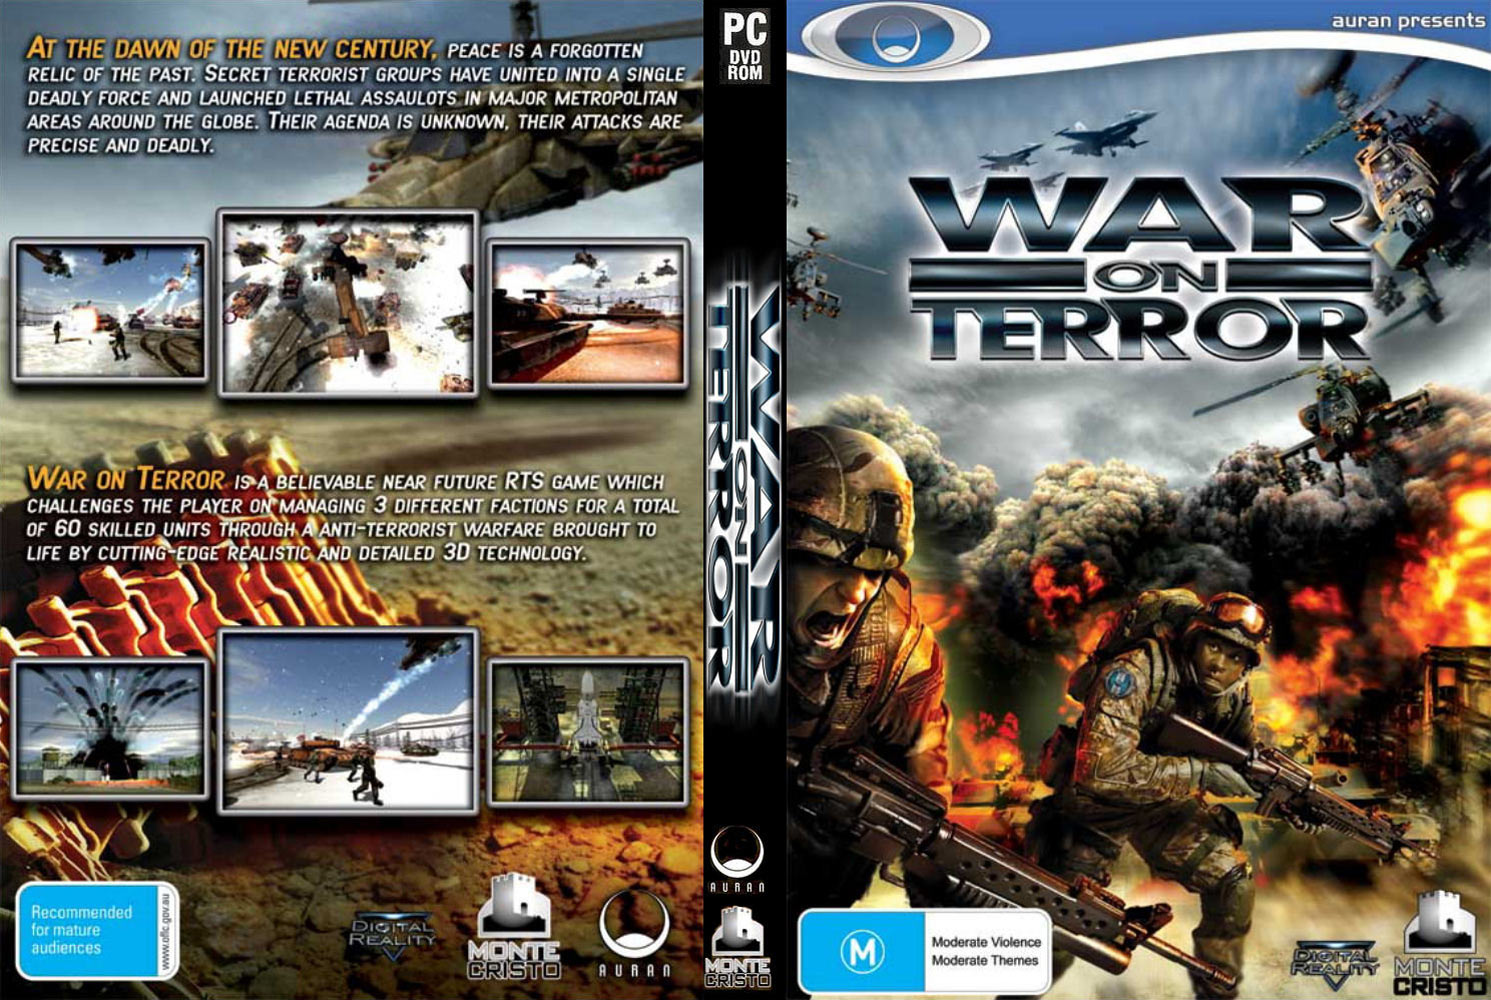 realism and the war on terror The war has so far cost 107 trillion usd in financial terms and 3546 deaths of the coalition soldiers including 2408 from us, 455 from uk and from the spill-over effect of the conflict in afghanistan and the phenomenon of terrorism germinated by it has also affected the neighboring countries like china.